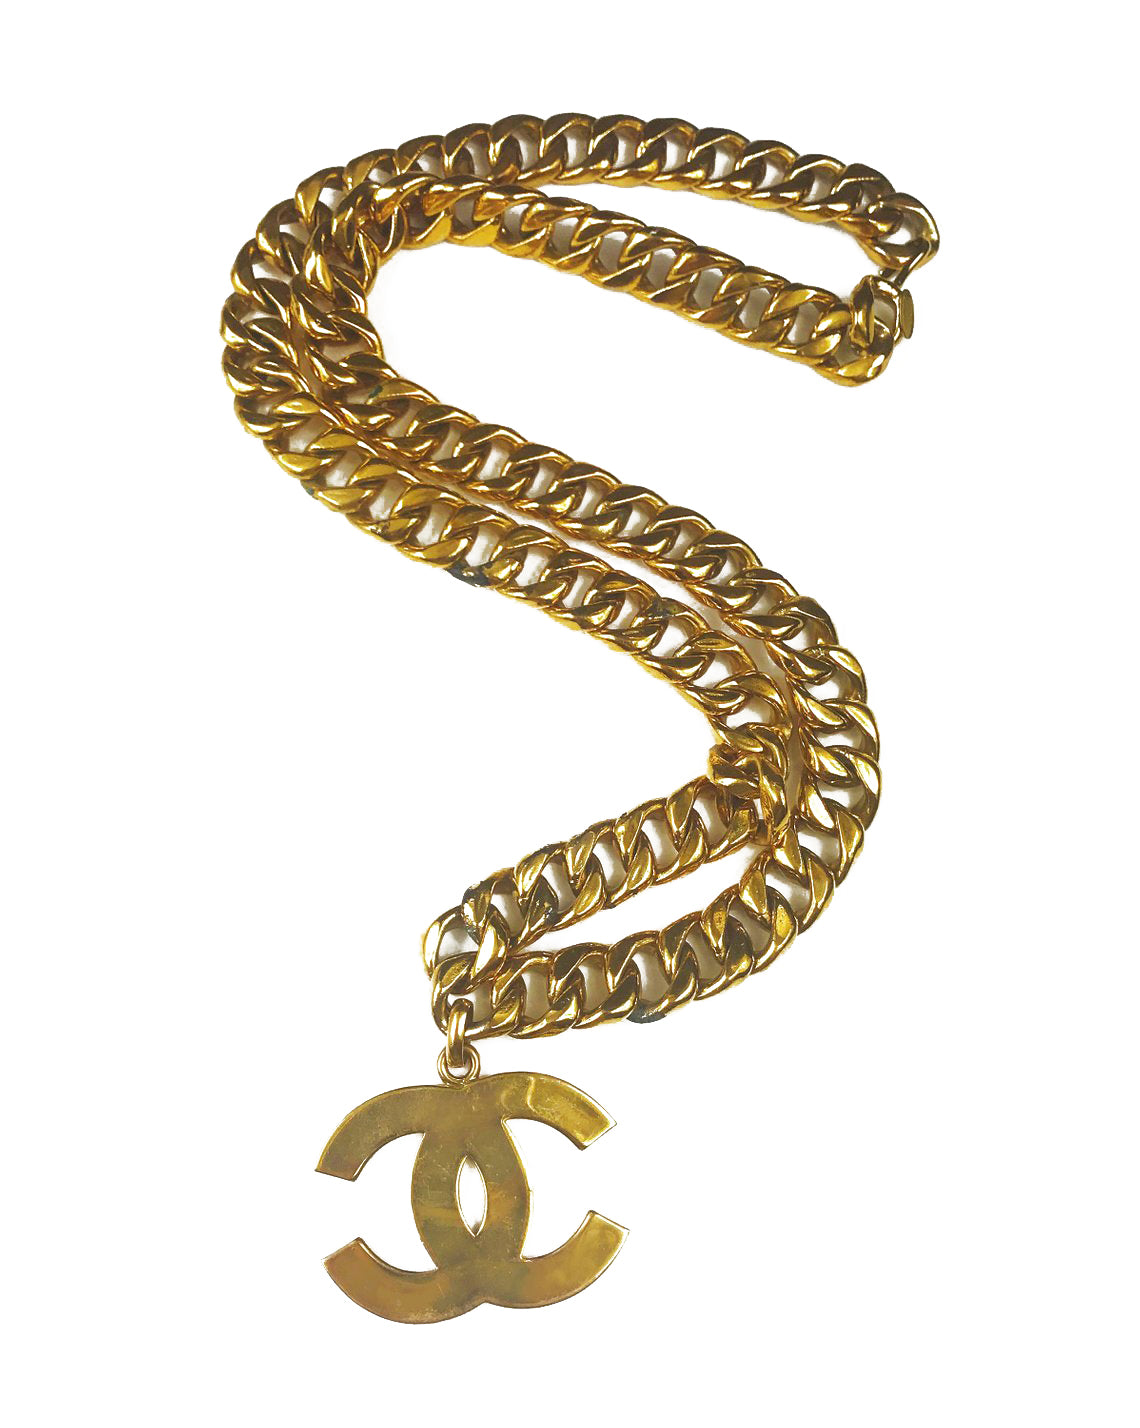 Fruit Vintage Chanel Logo Pendant, rare and important necklace. This style was famously worn by Linda Evangelista in the 1992 'Chanel Hip Hop' collection campaigns.